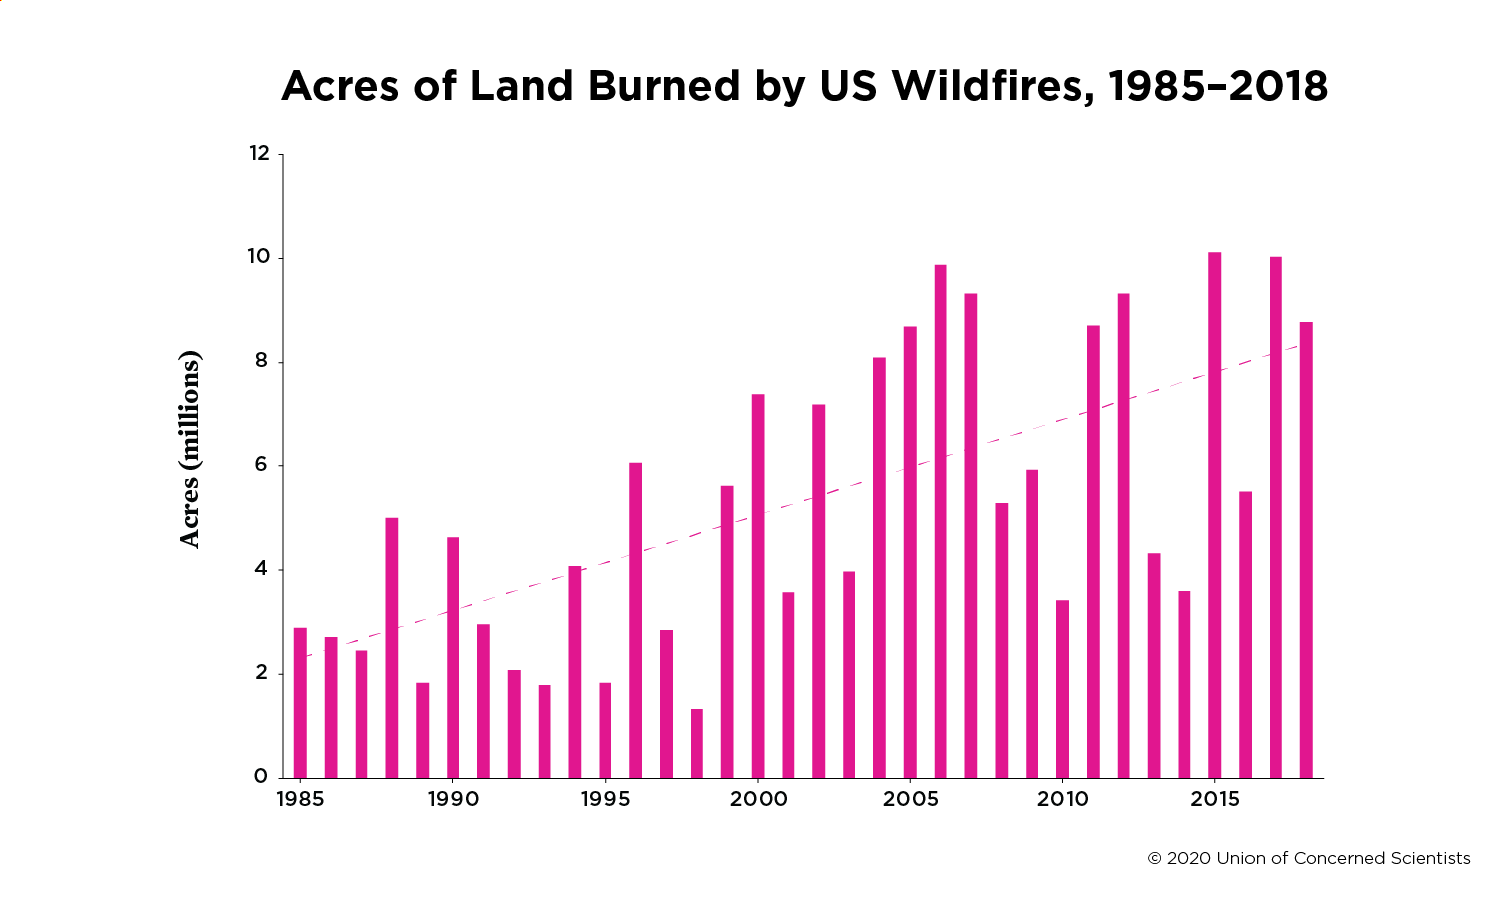 A figure showing a rise in acres of land burned by wildfires in the US from 1985 to 2018.